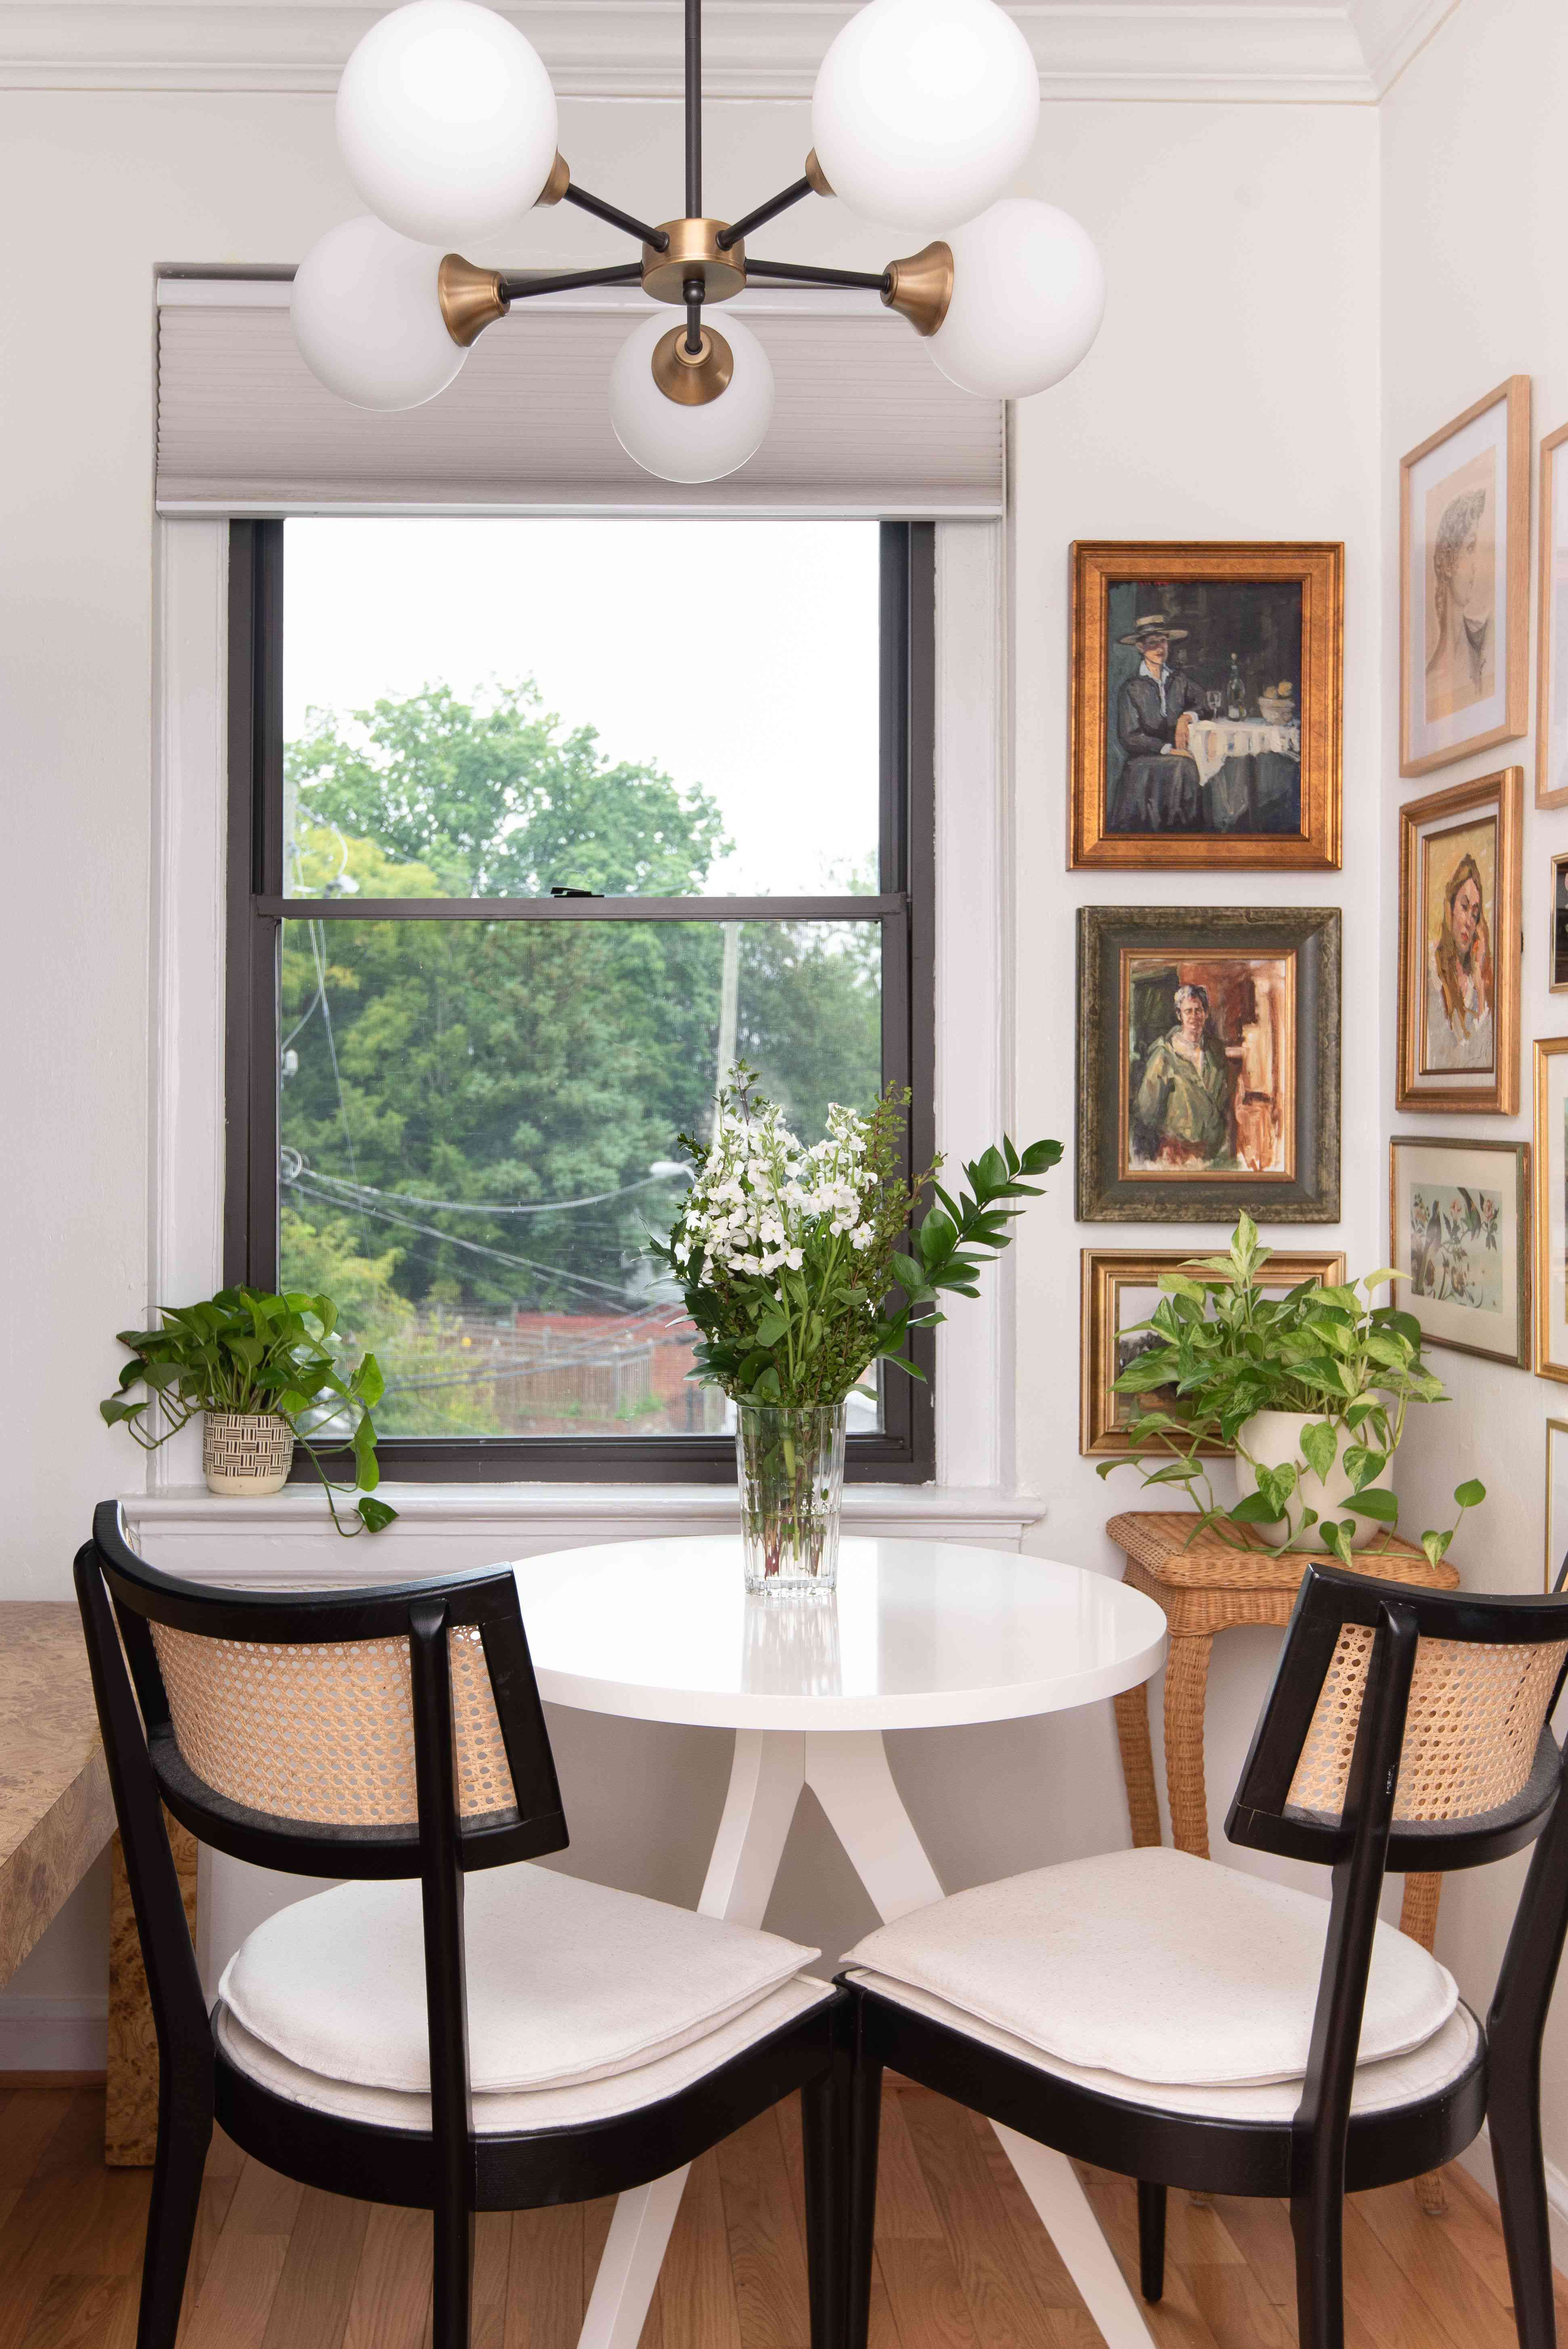 Small dining area with window and gallery wall.